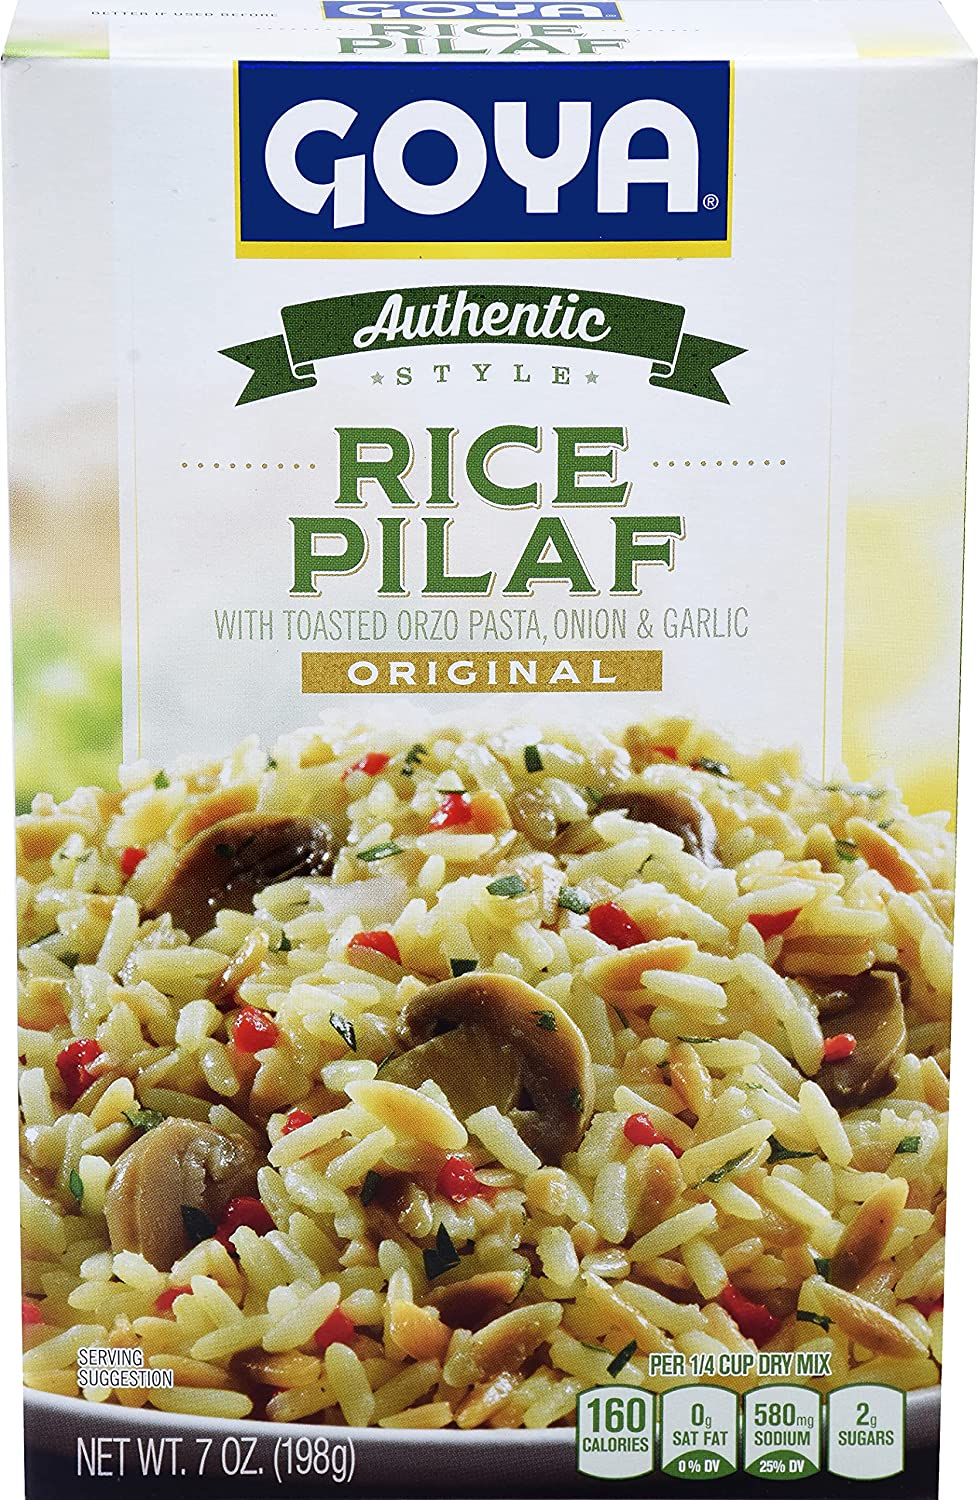 Goya Regular discount Foods Authentic Style Rice Pilaf Pack Super sale period limited of Ounce 7 Mix 12